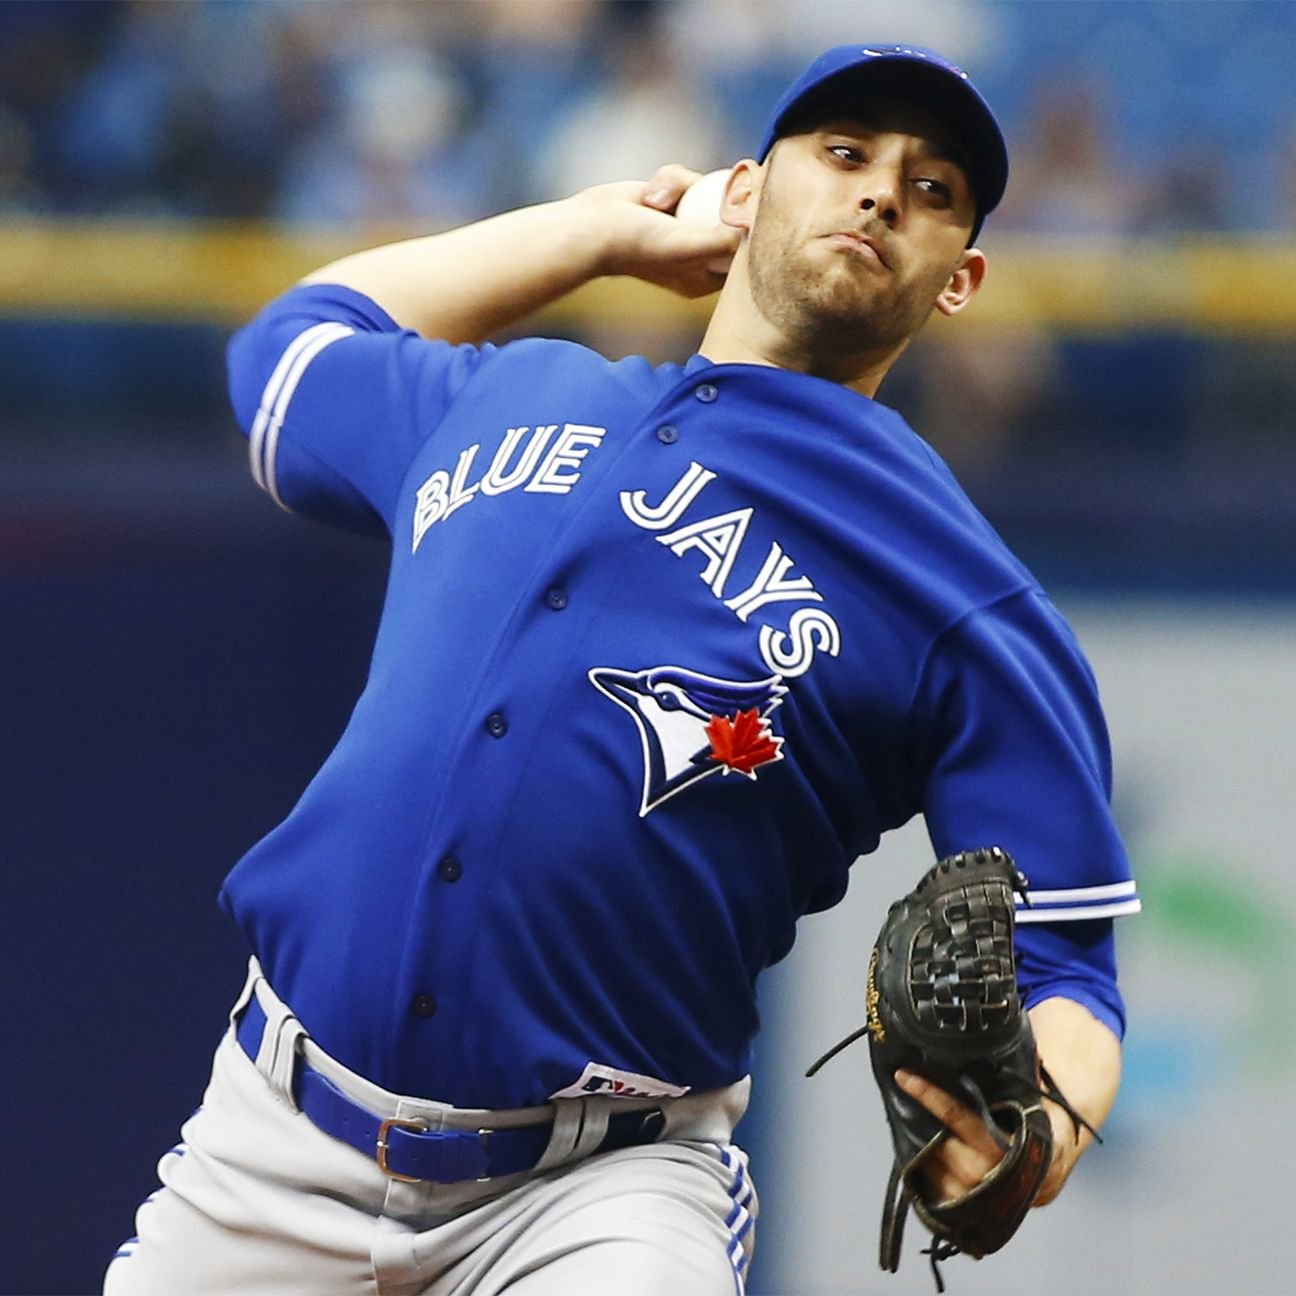 Marco Estrada Takes No-hit Bid Into 8th Inning For 2nd